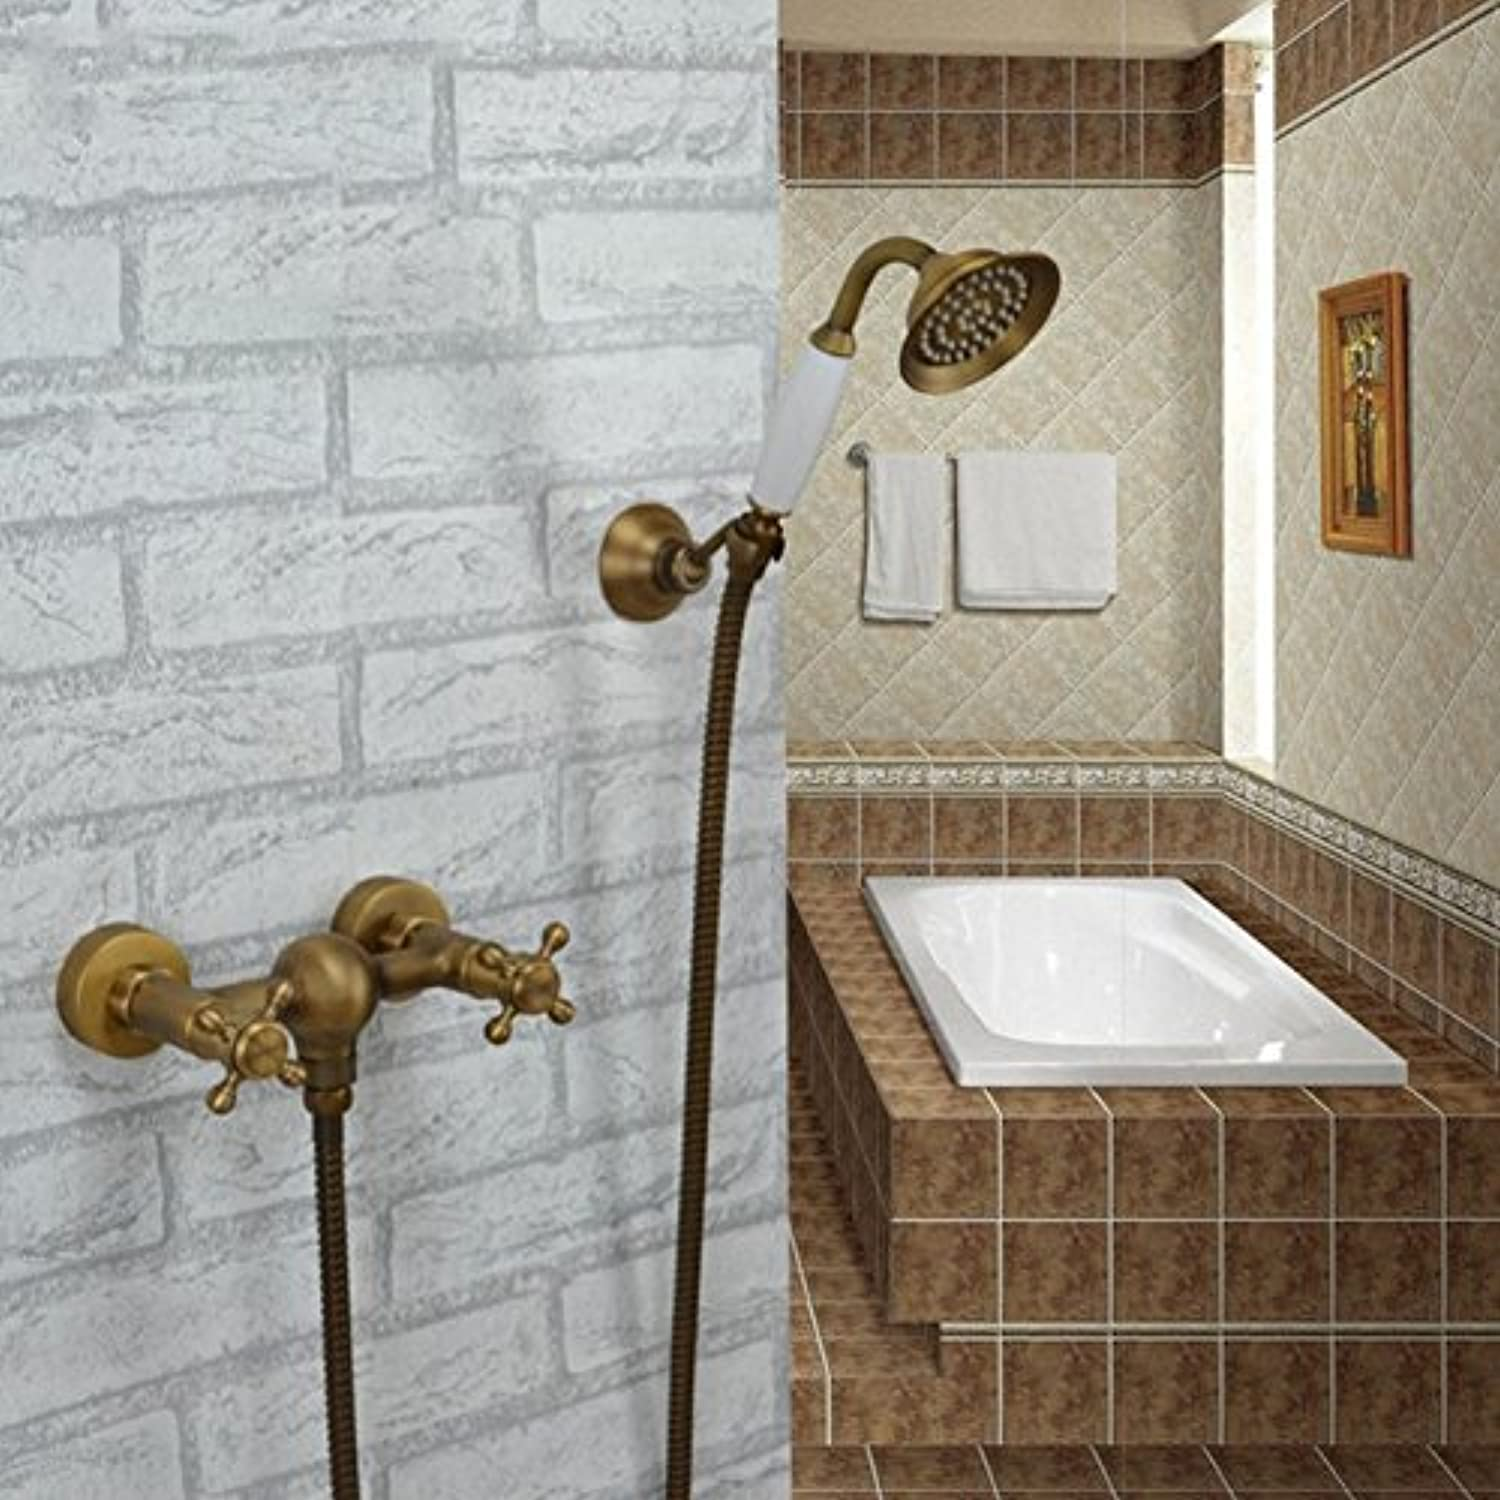 Retro Deluxe Faucetinging antique tub shower faucet into the wall classical copper bathtub full of hot and cold shower mixer with handle shower,Red